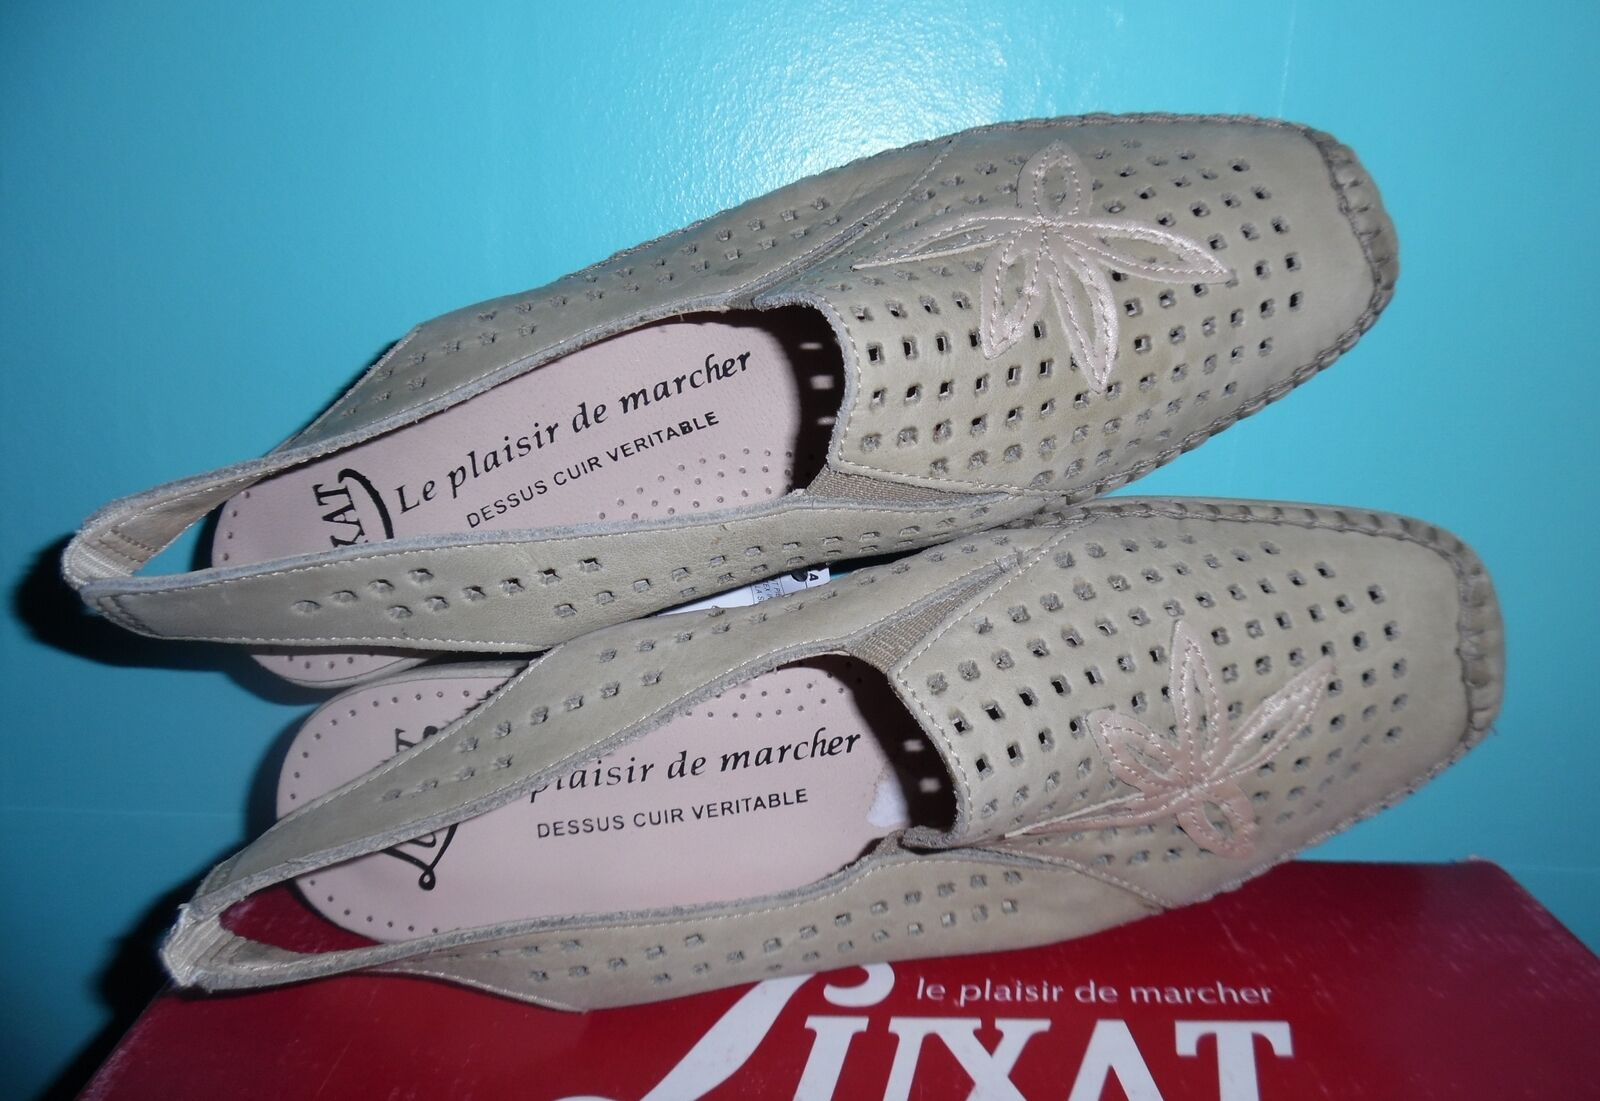 Moccasins luxat dossiero model size 41 beige leather new flexibility, comfort